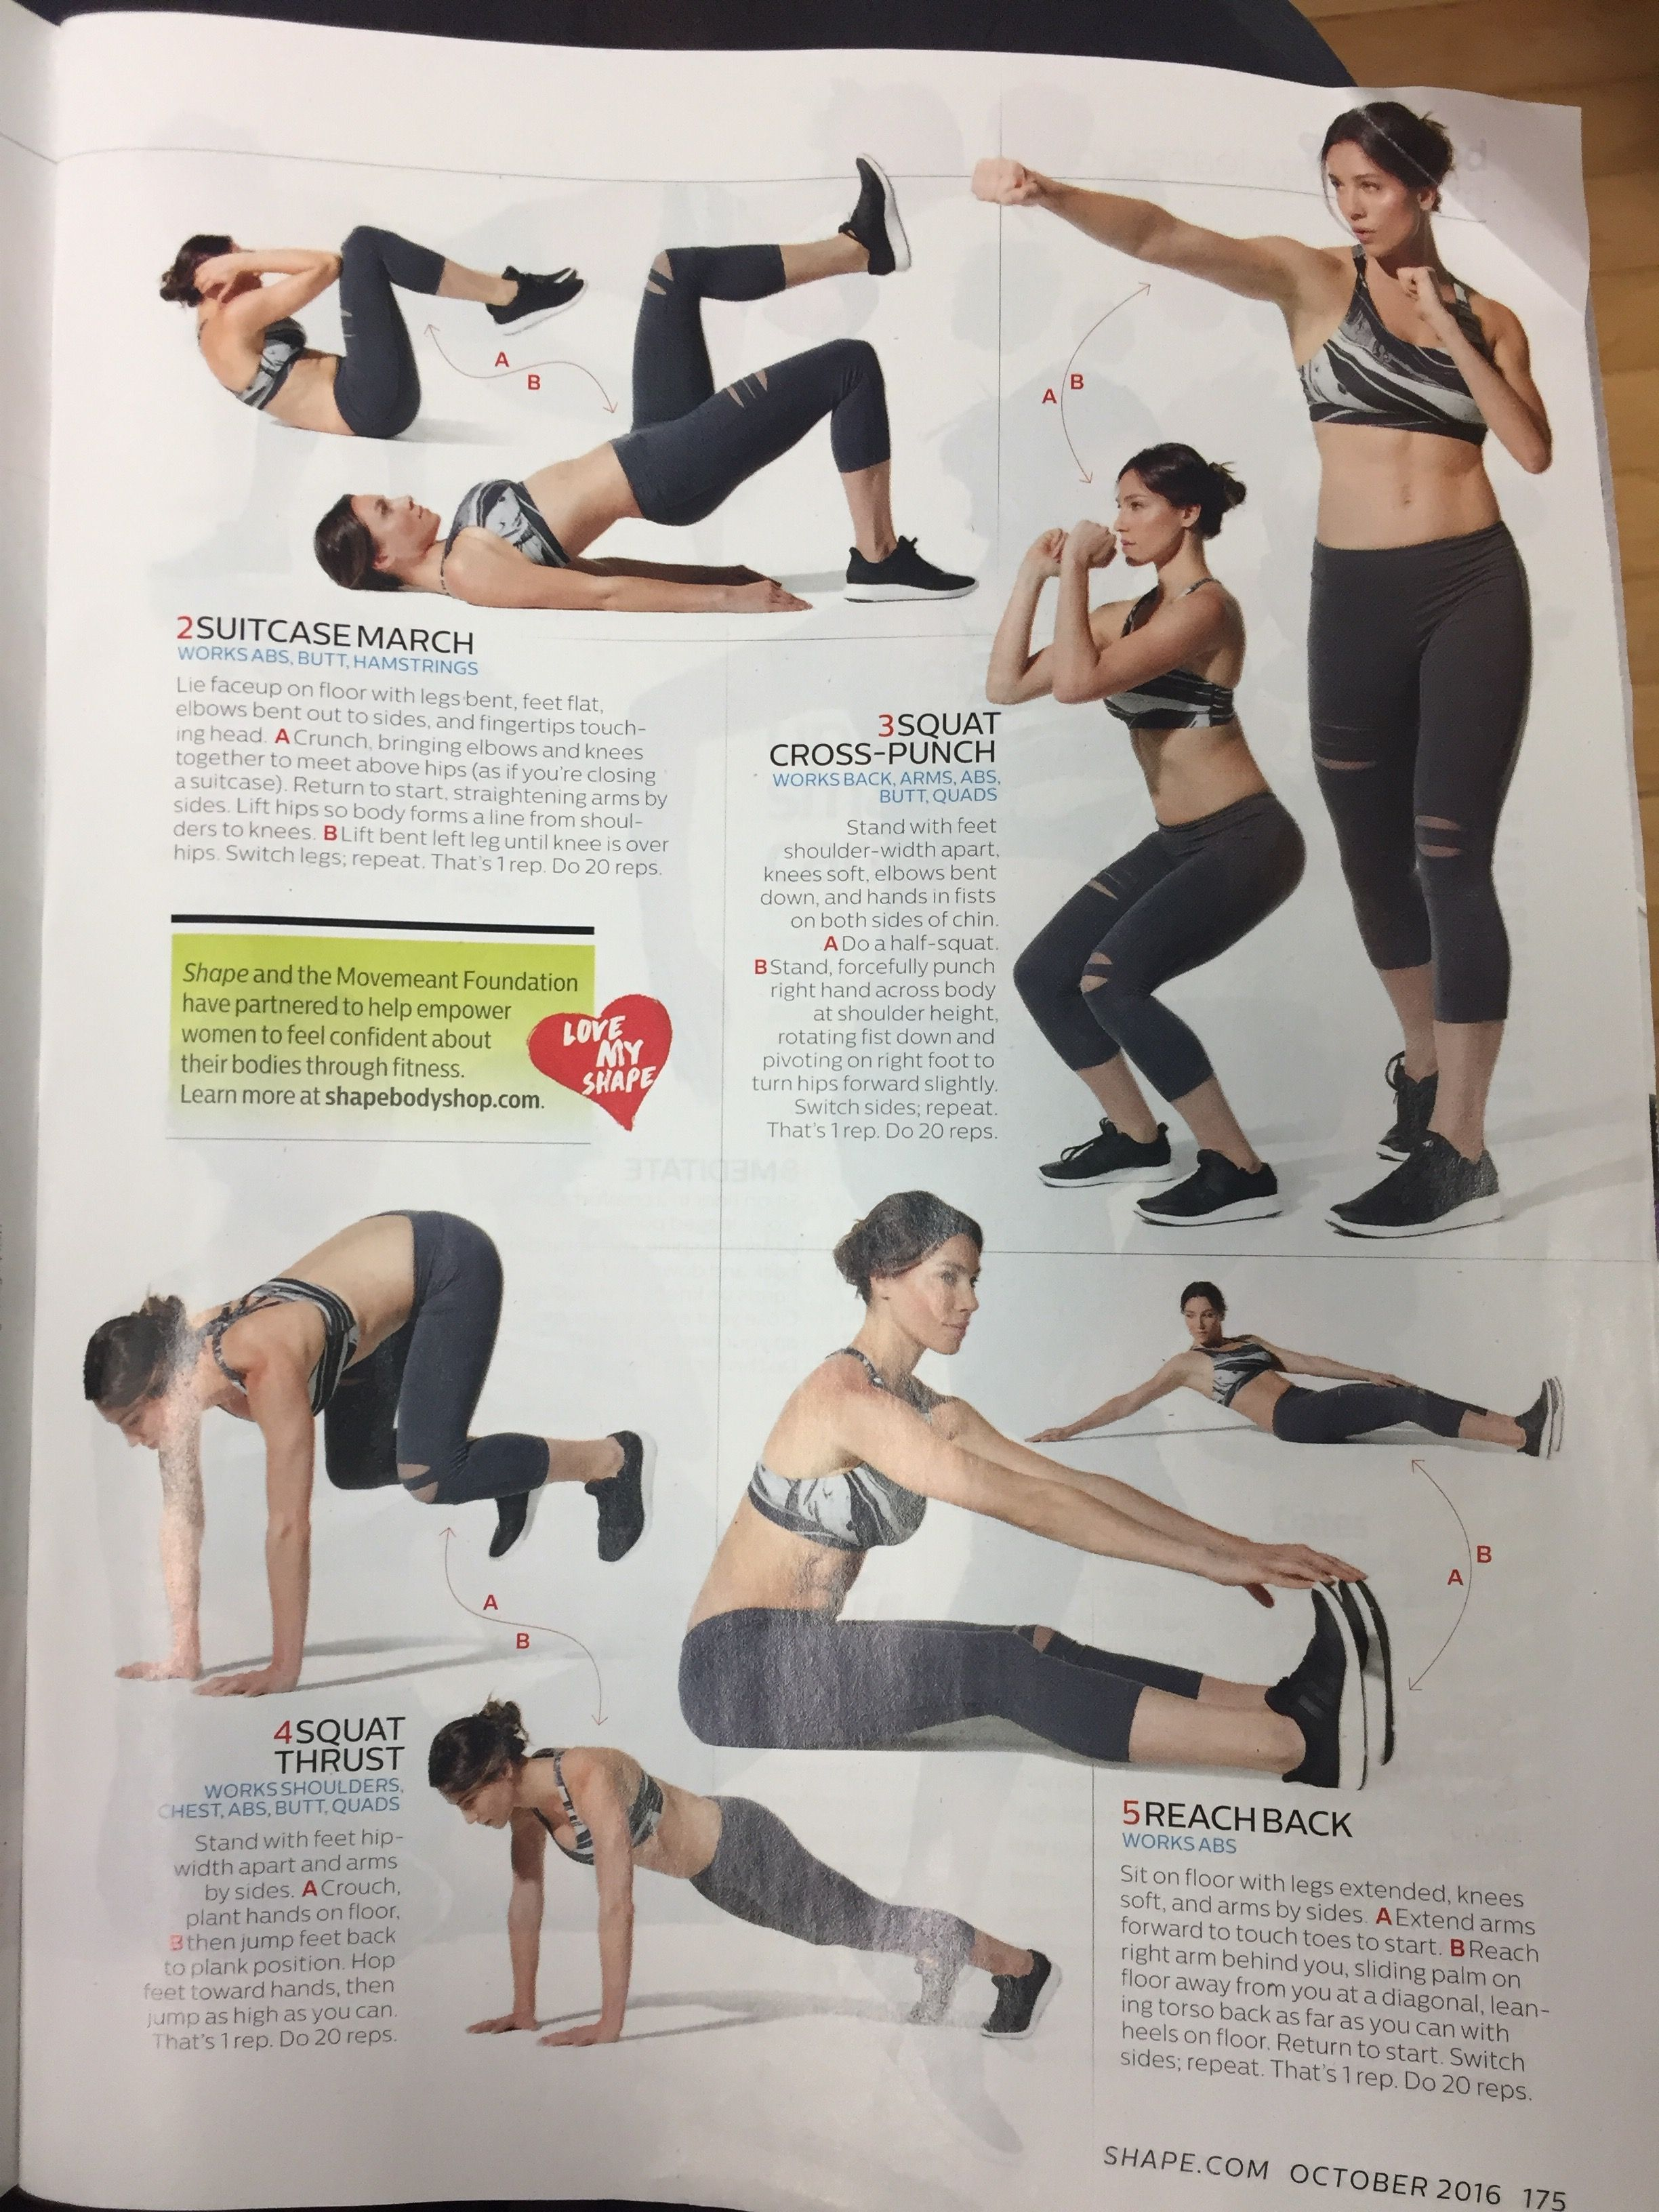 Bootcamp Bodyweight Workout Outdoor Workouts Exercise